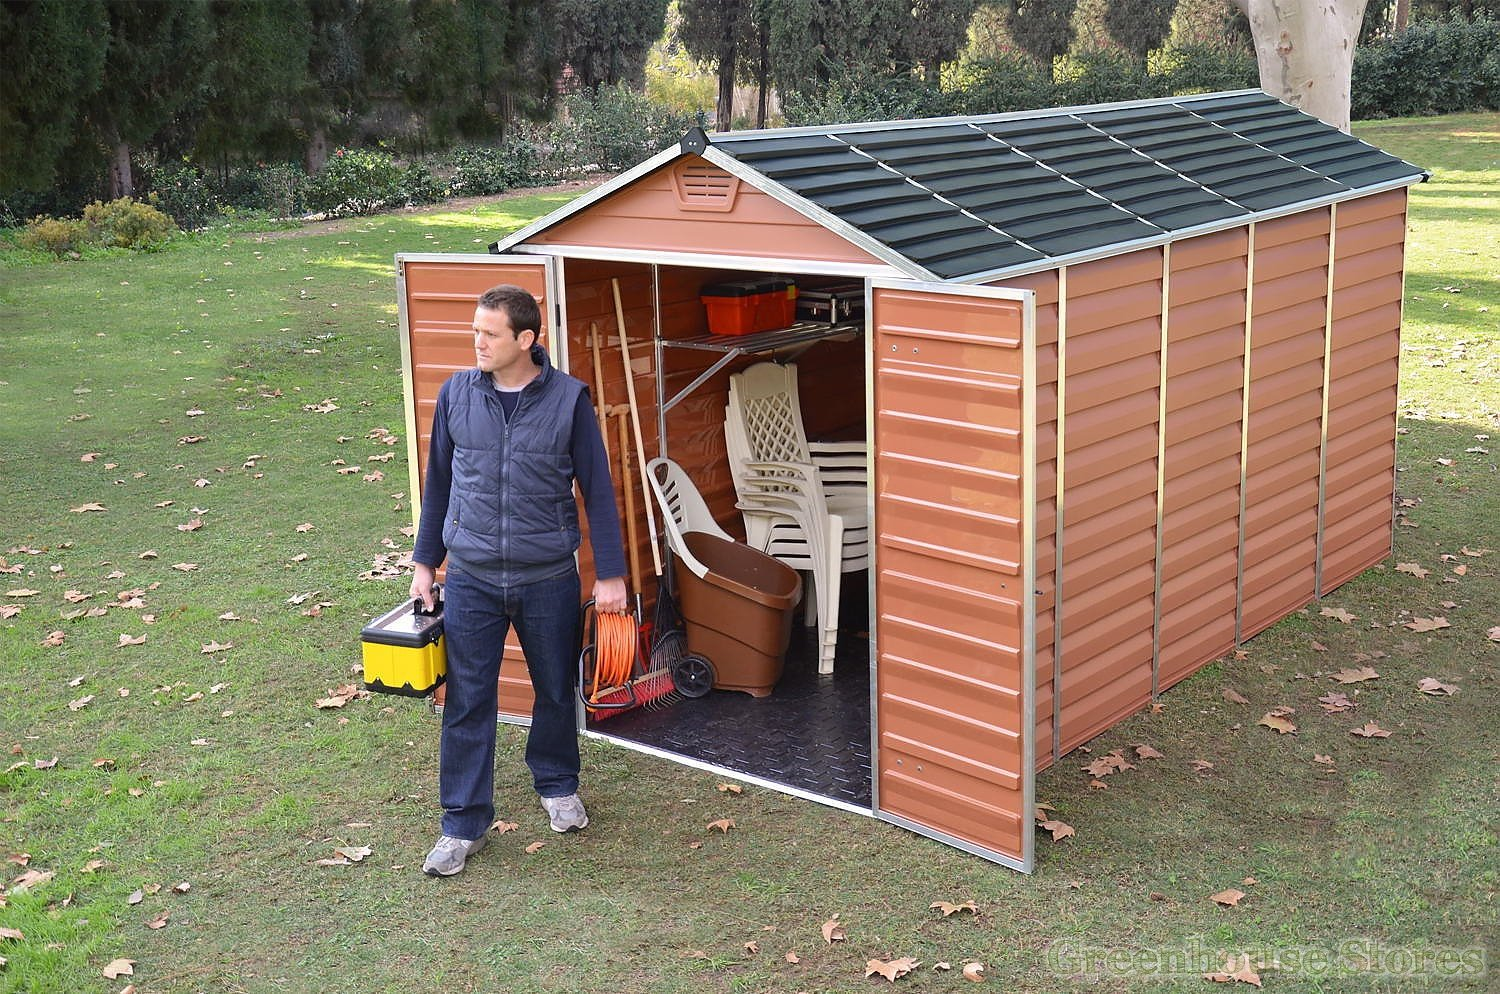 Palram 6x12 Plastic Skylight Garden Storage Shed In Amber